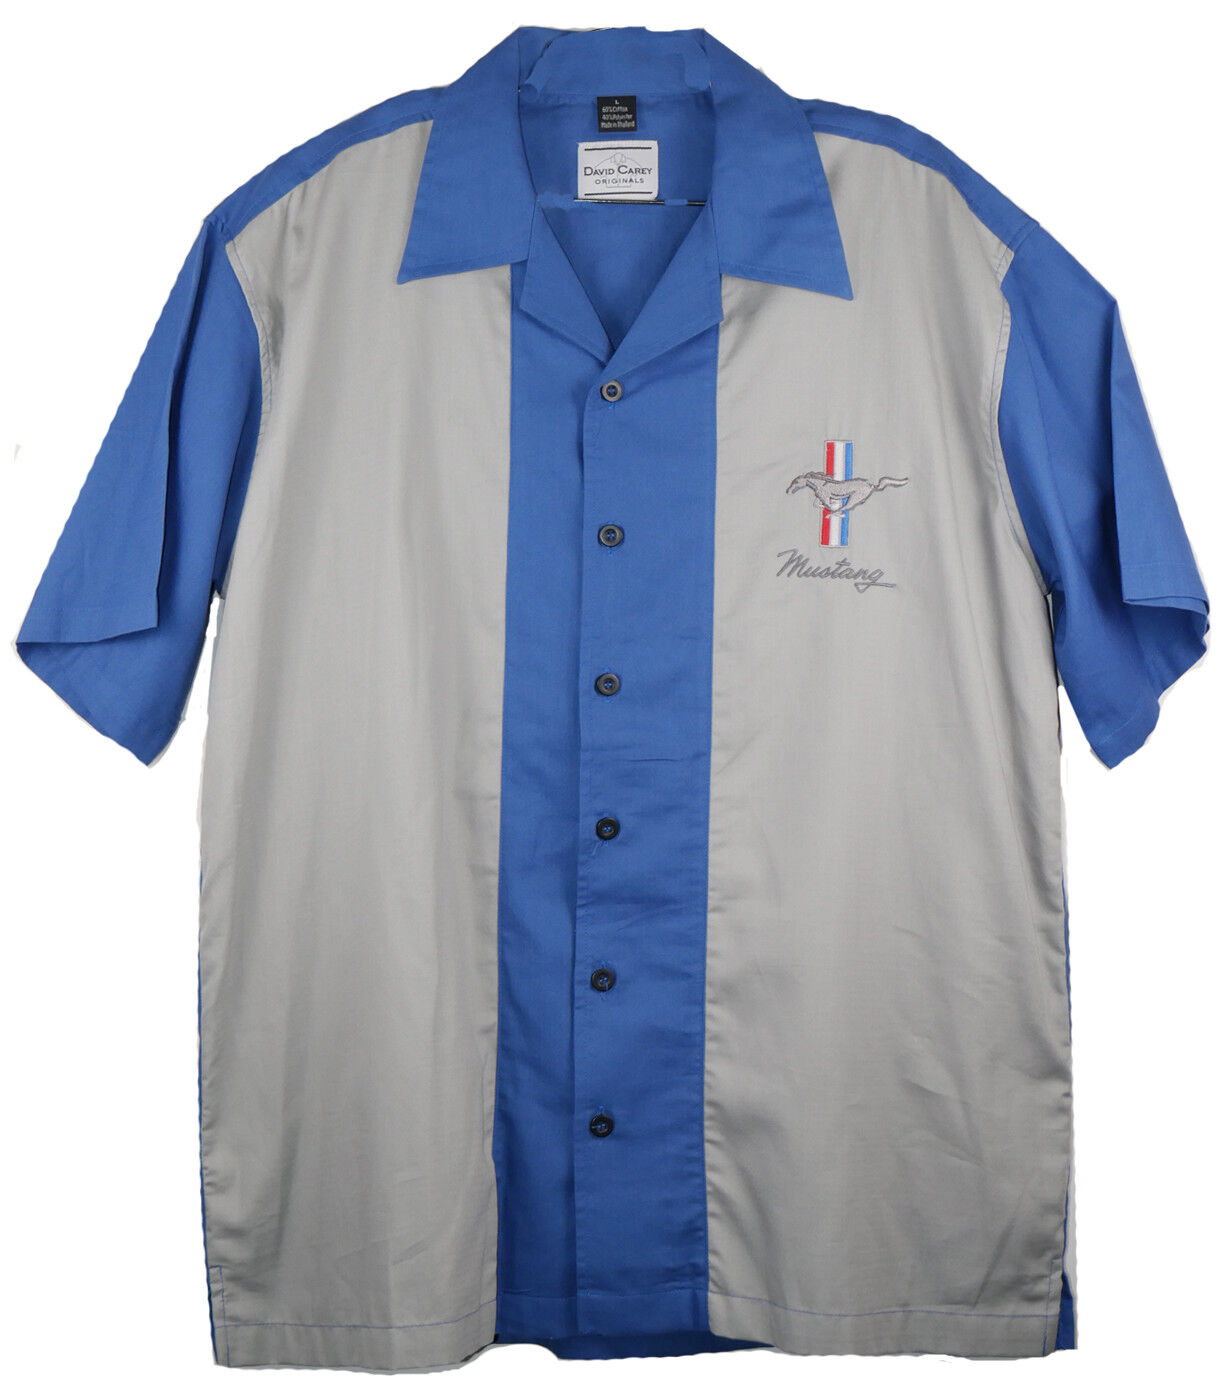 David Carey Iconic Ford Mustang Pony Club Crew Bowling Shirt Button Down